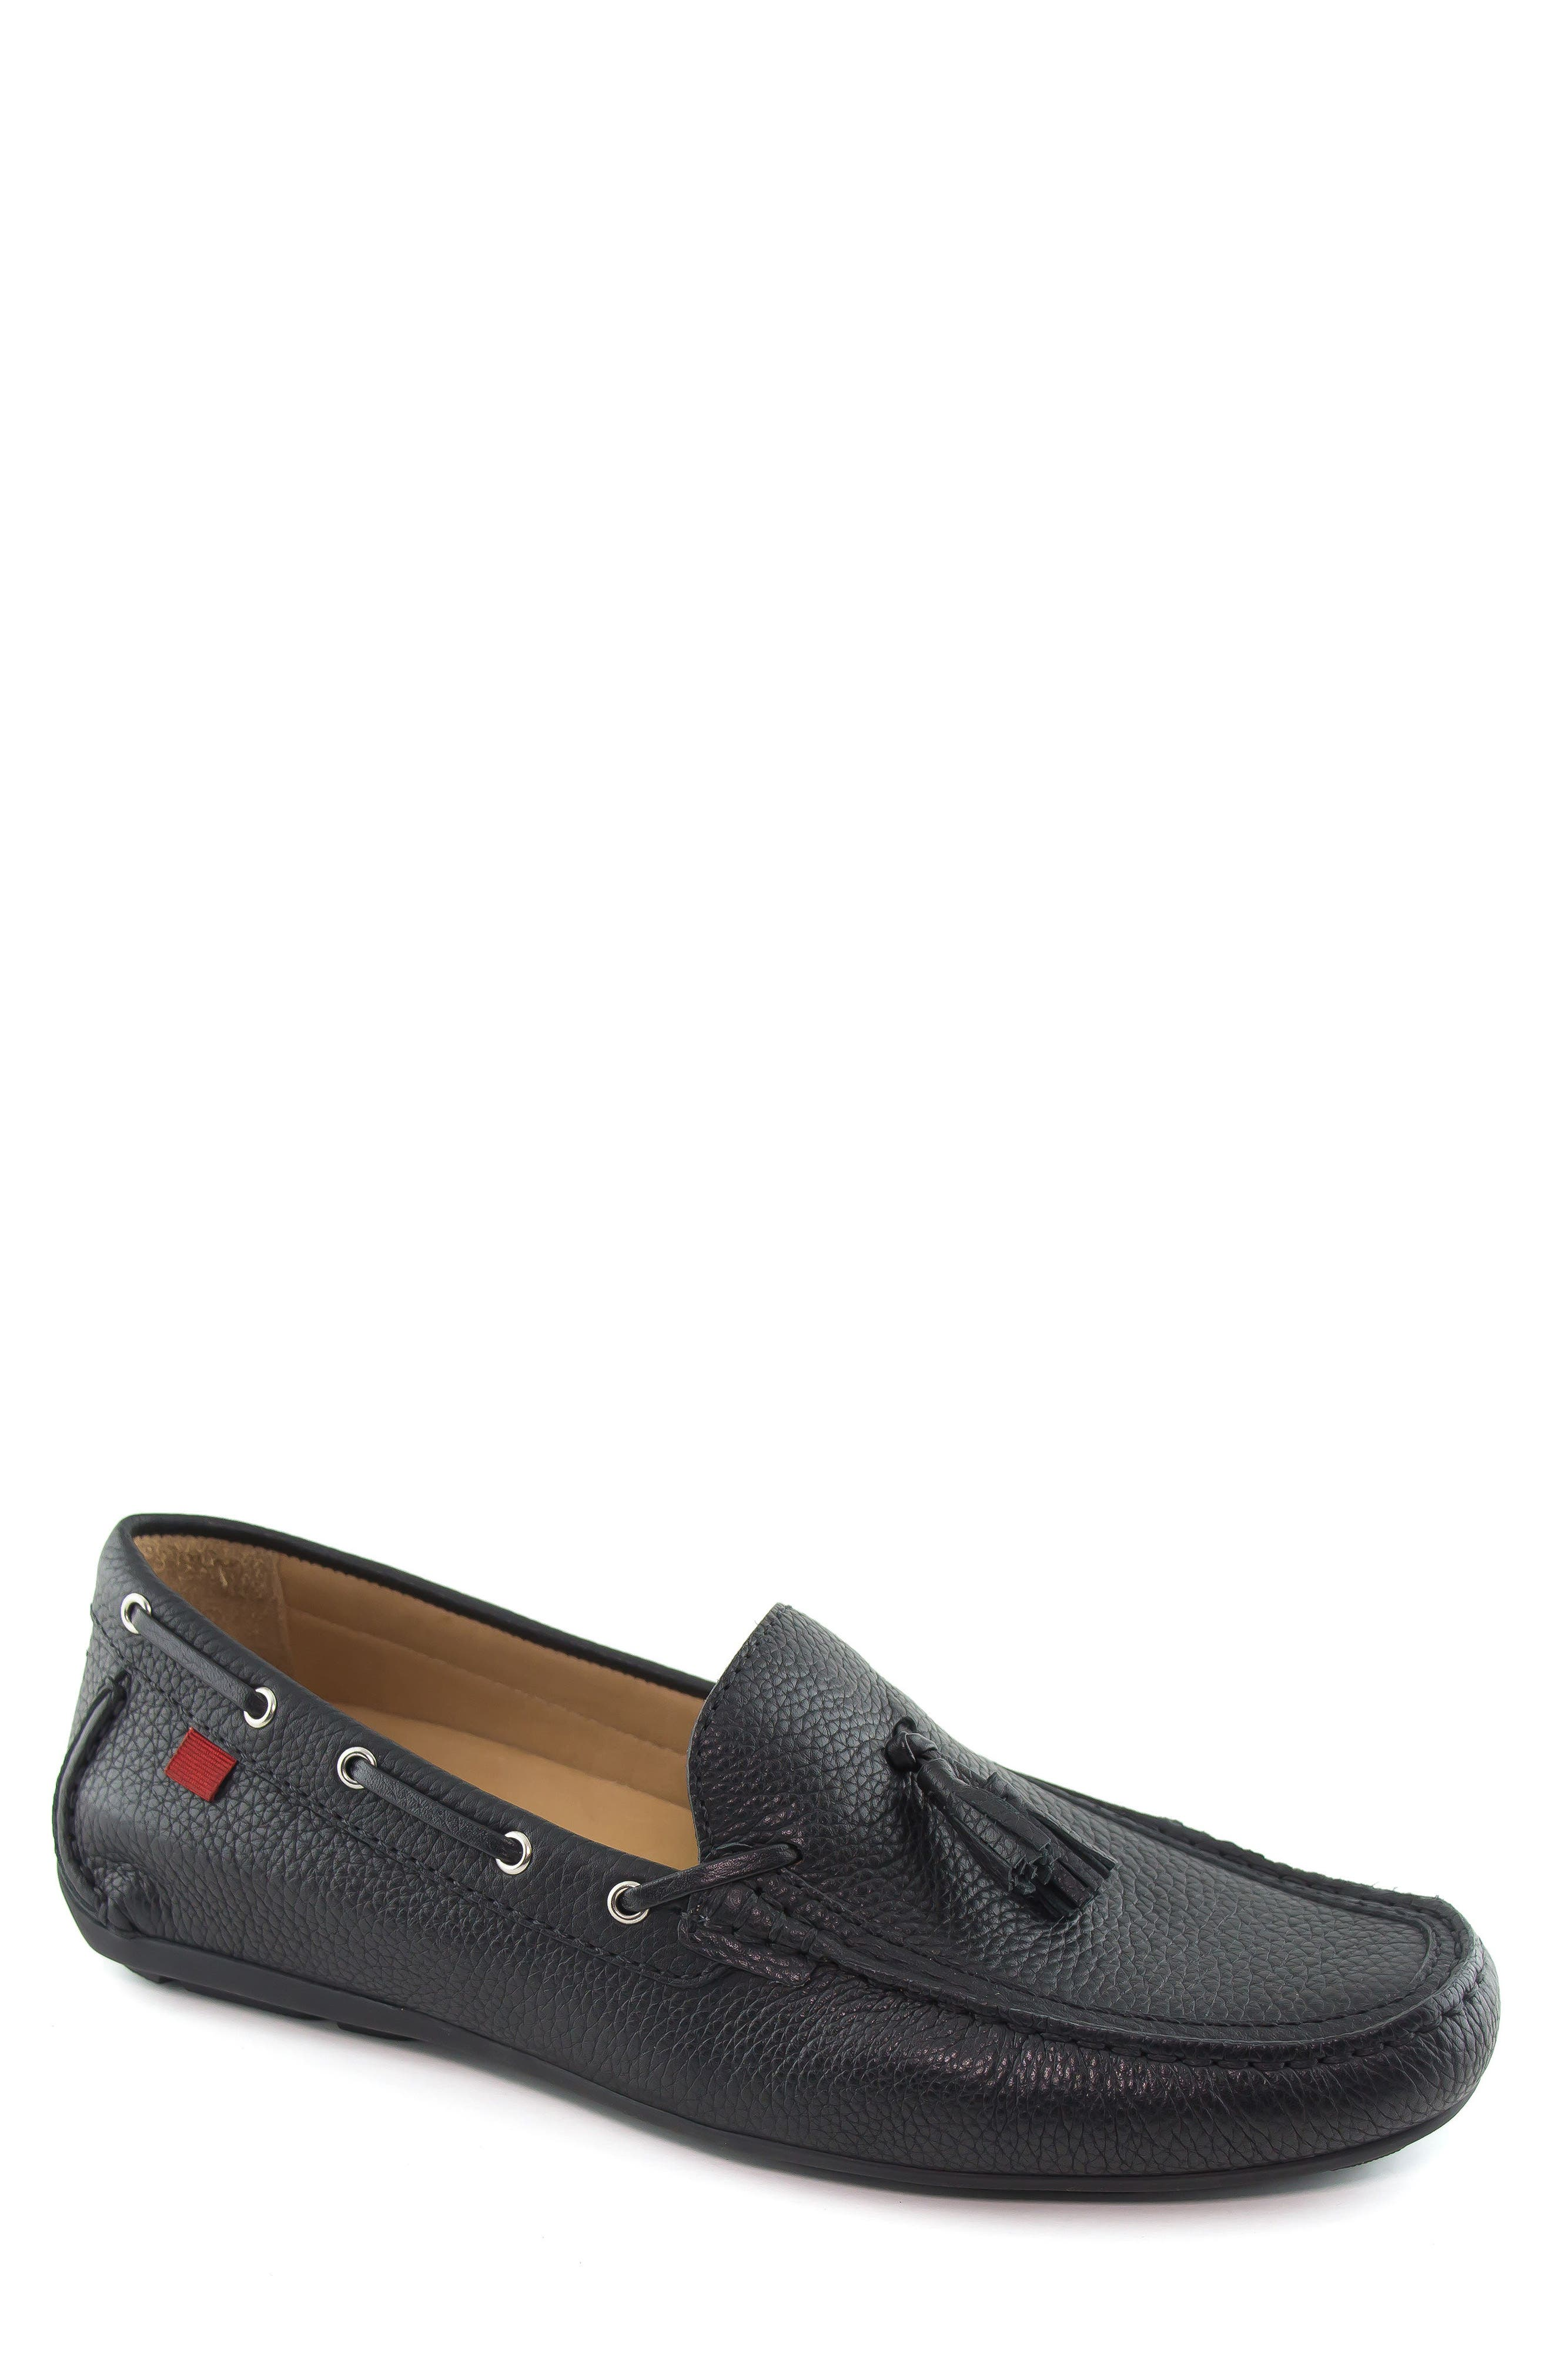 Bushwick Tasseled Driving Loafer,                         Main,                         color, 001